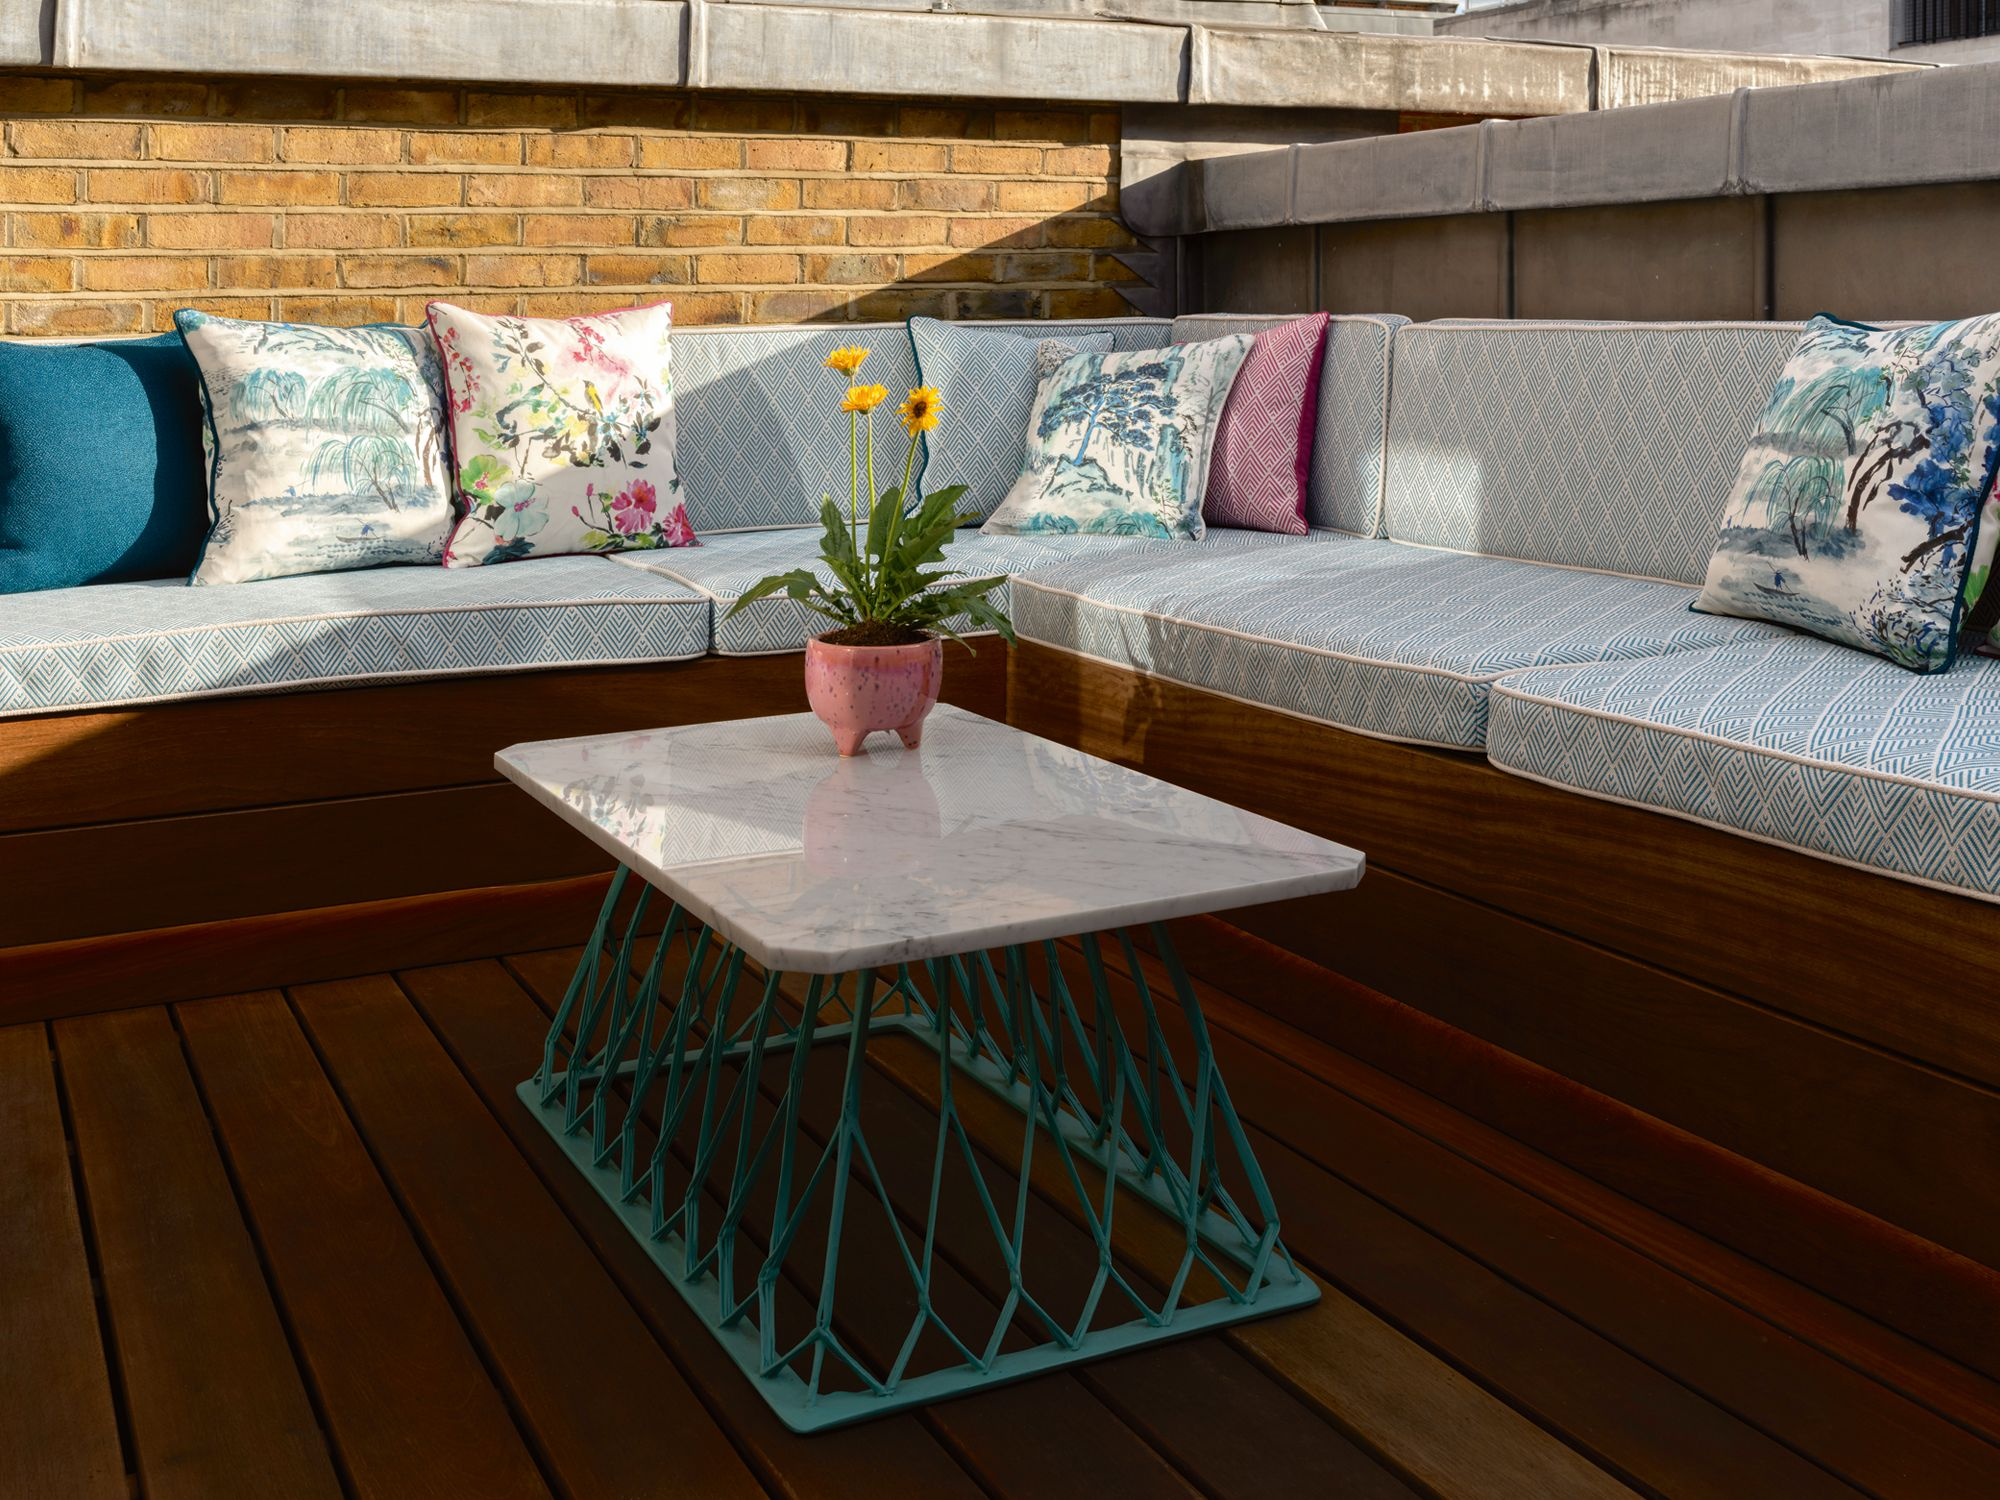 Floral cushions add a colourful touch to this outdoor area